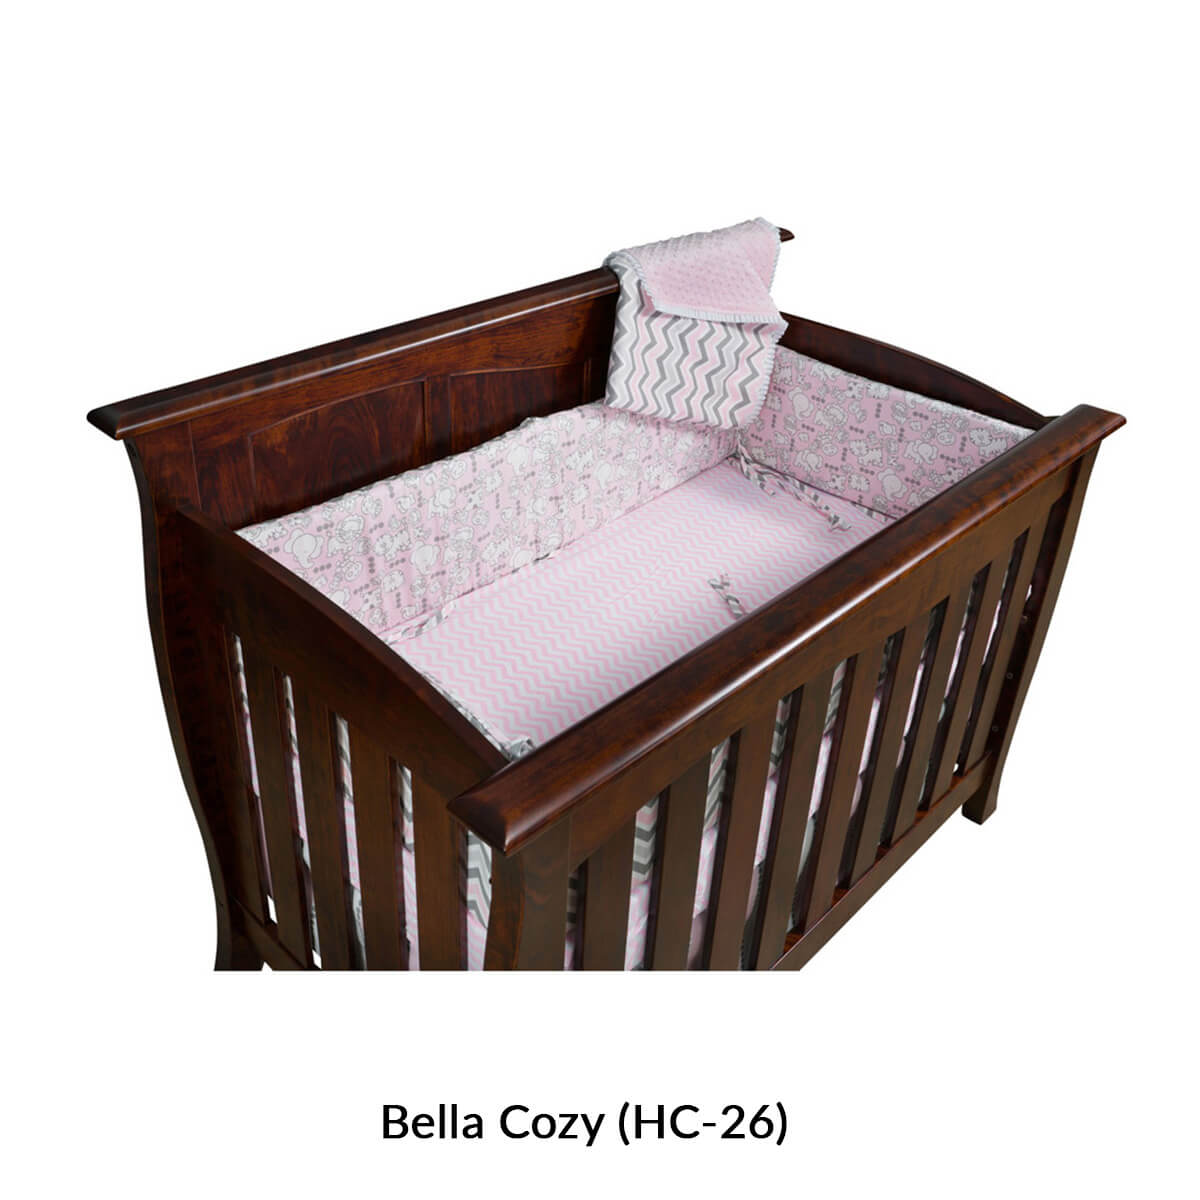 9.-bella-cozy-hc-26-.jpg